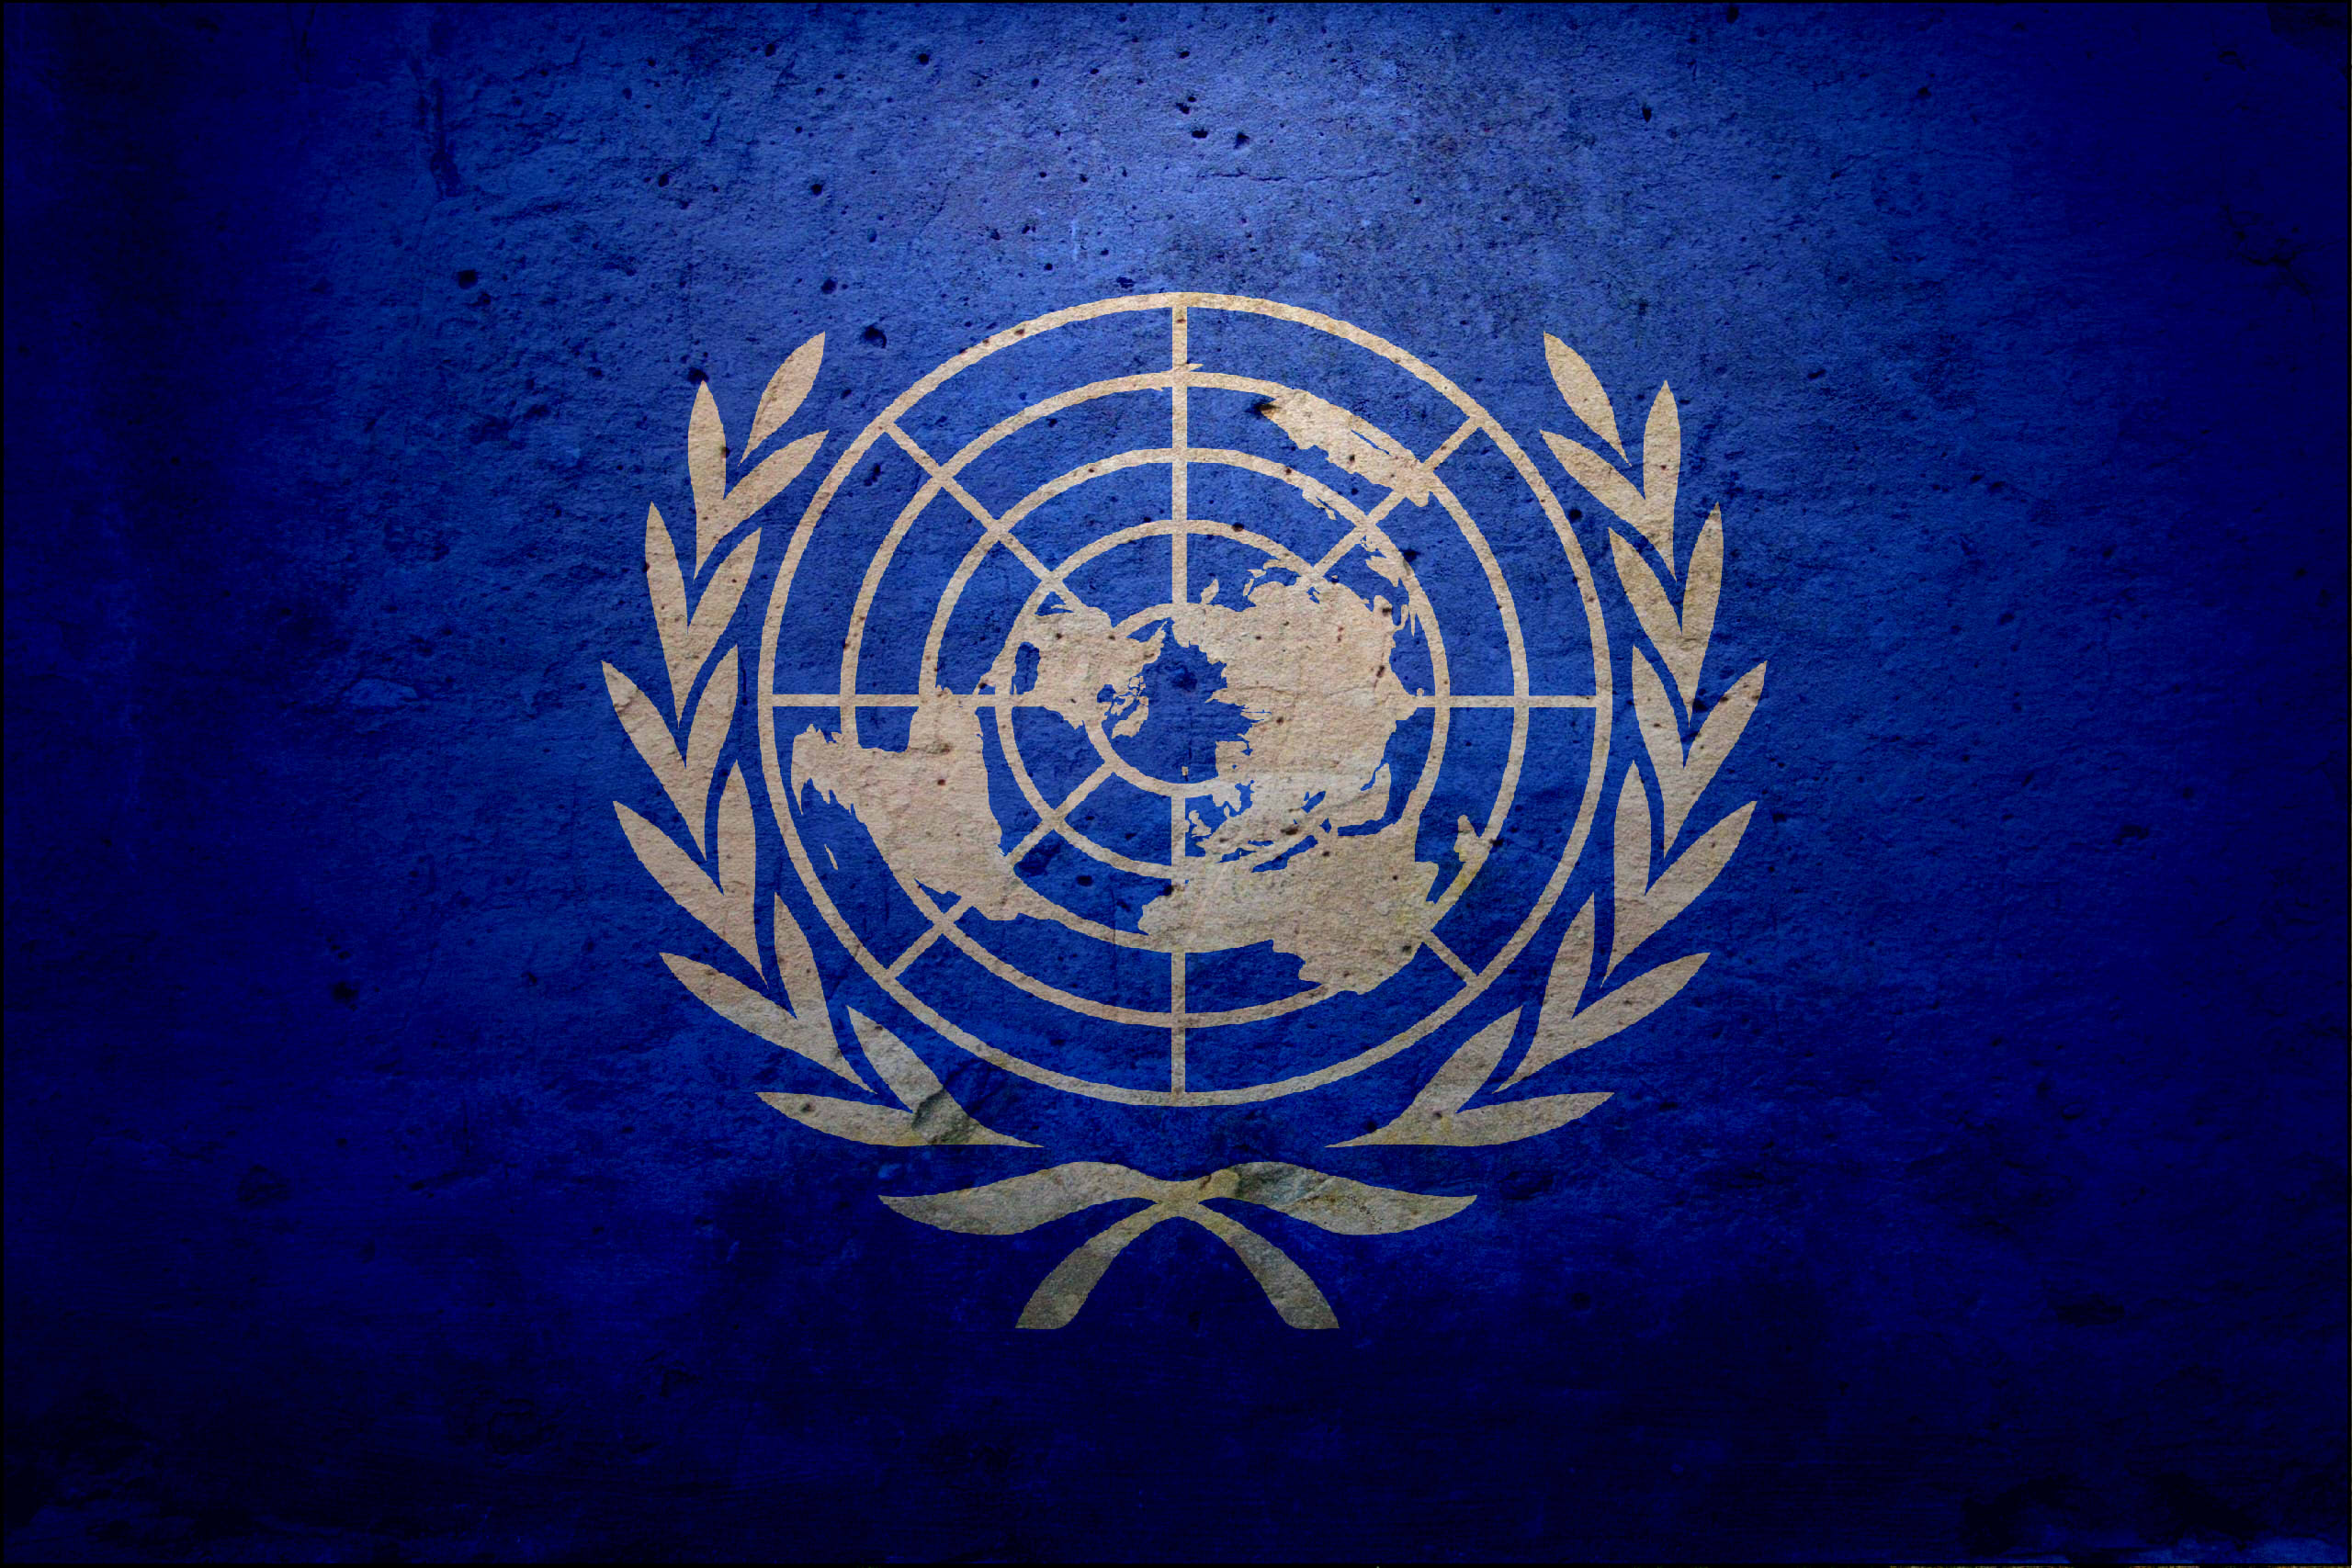 united_nations_hd-wallpaper-186969